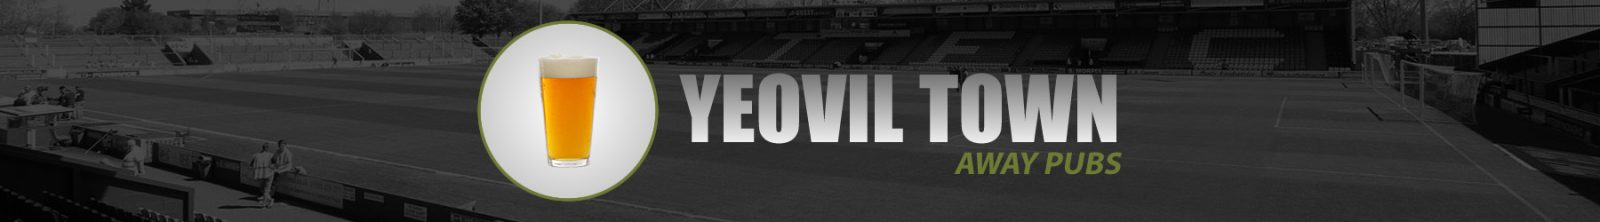 Yeovil Town Away Pubs